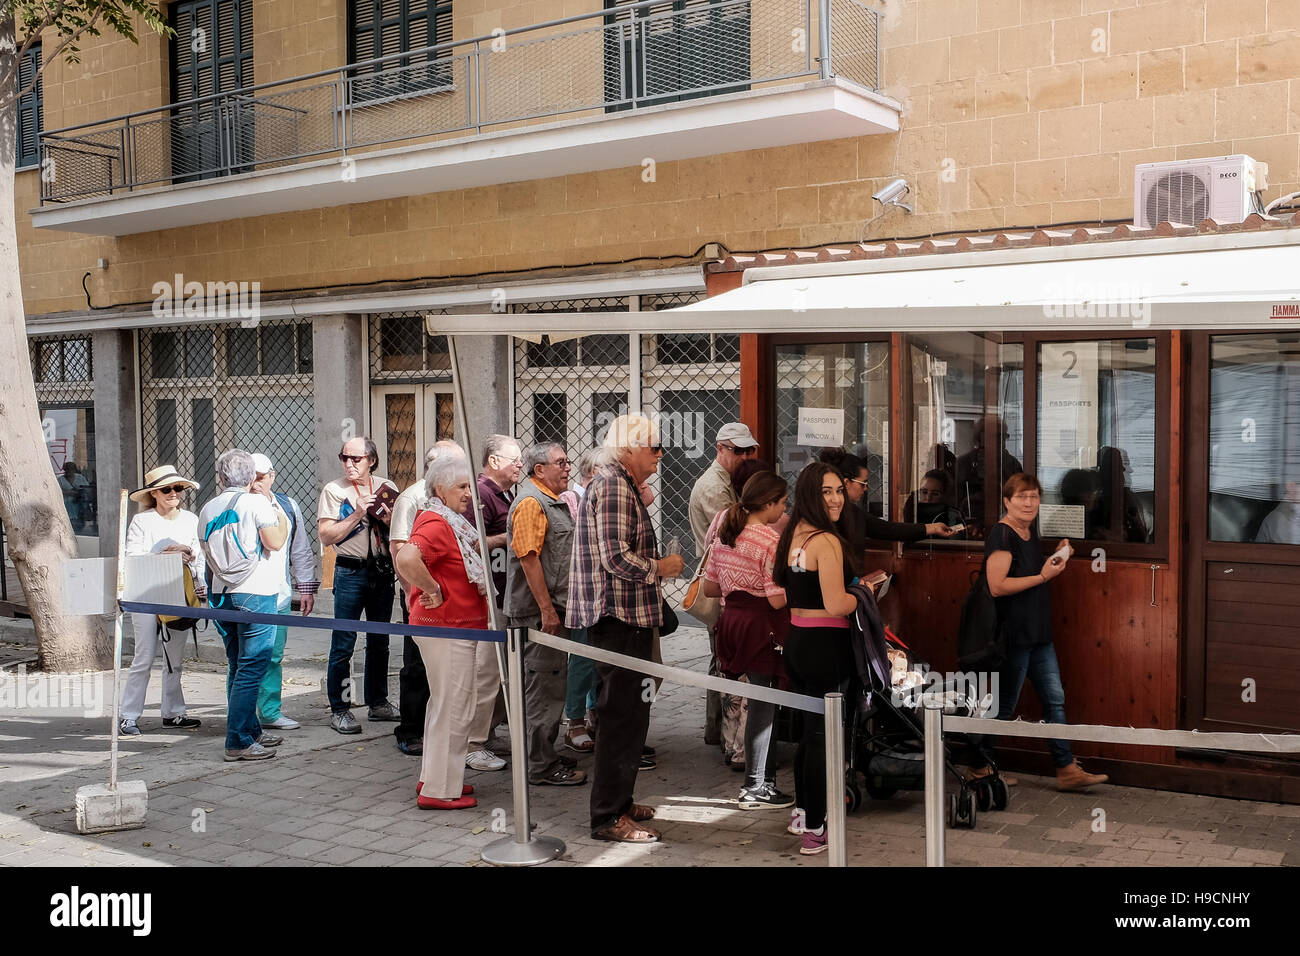 People queue at the border control between the Greek Cypriot and Turkish Cypriot areas in Nicosia, Cyprus. - Stock Image